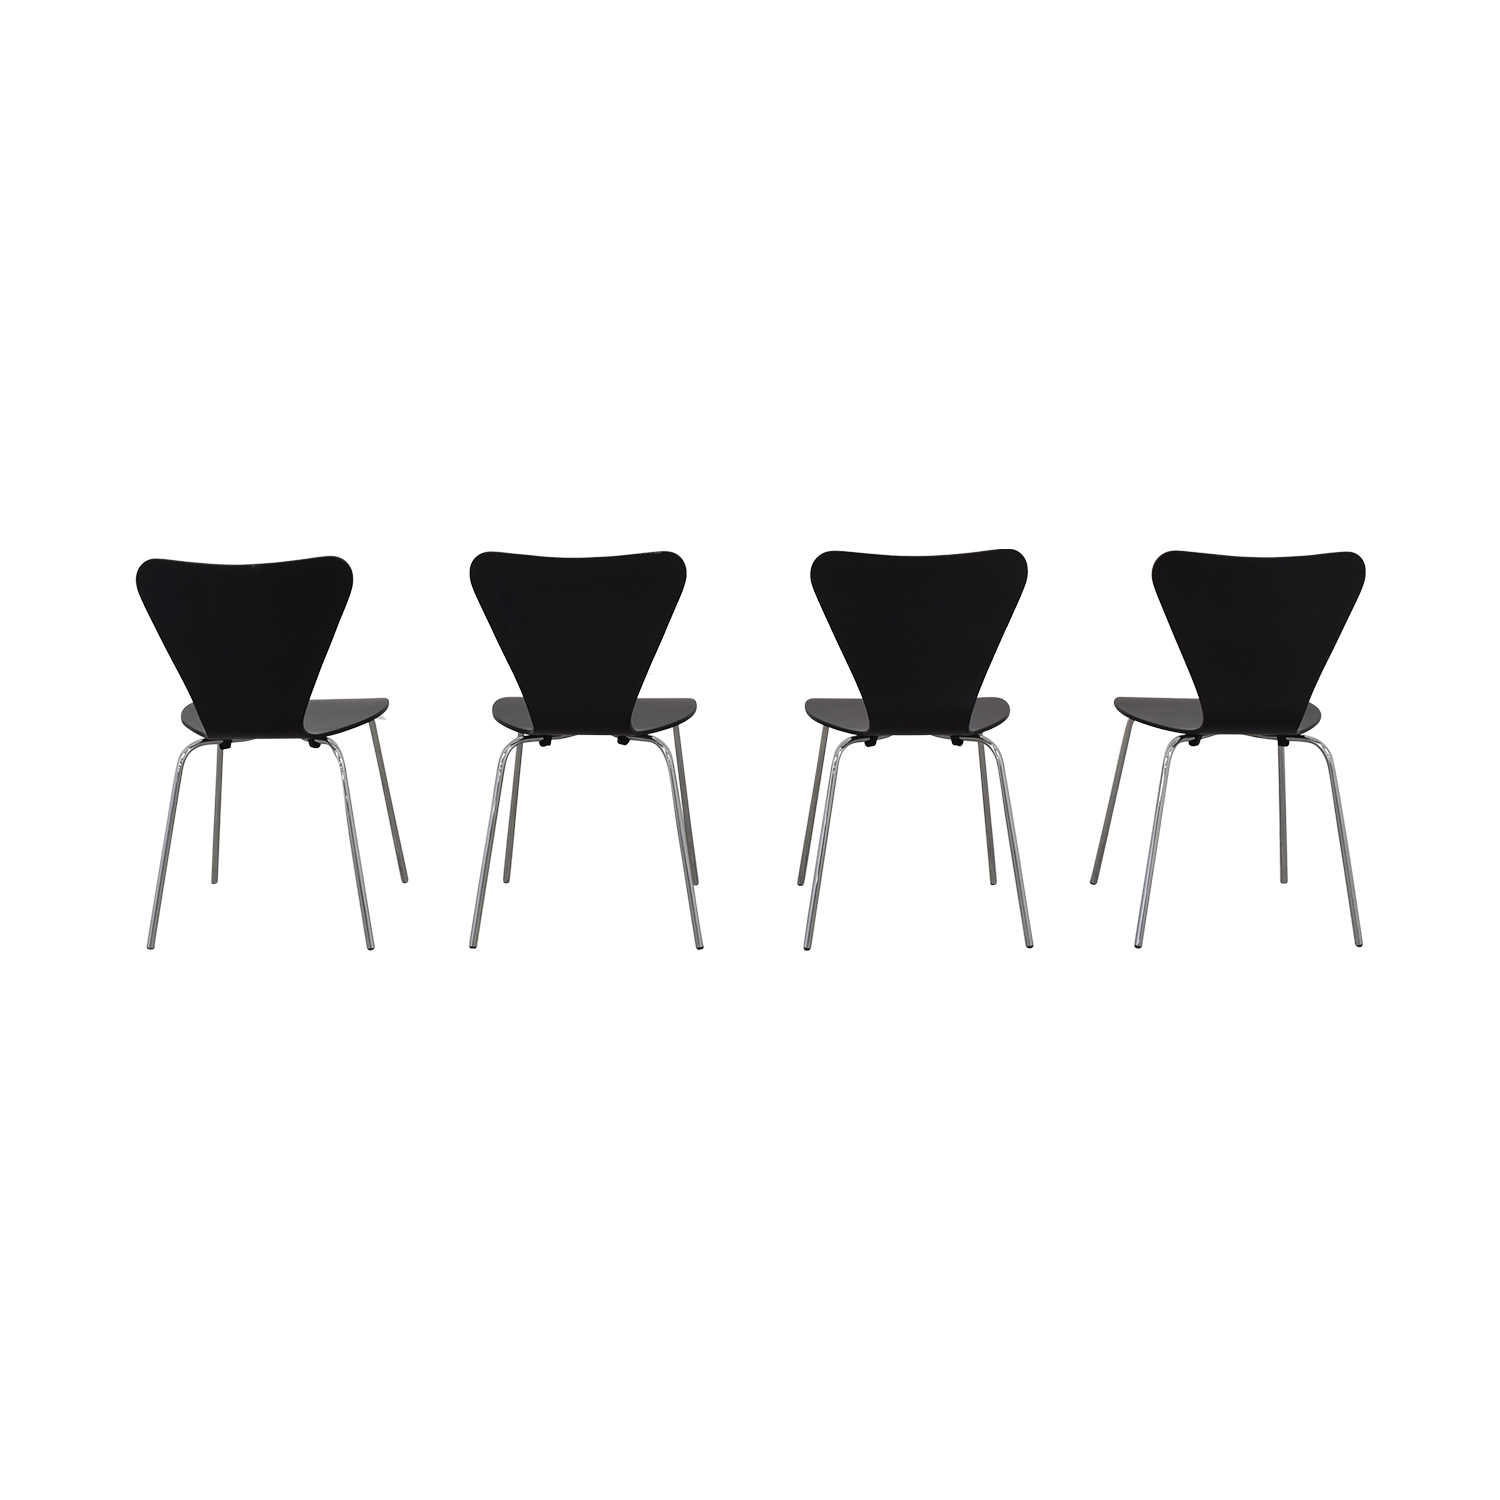 buy Room & Board Black Chairs Room & Board Dining Chairs